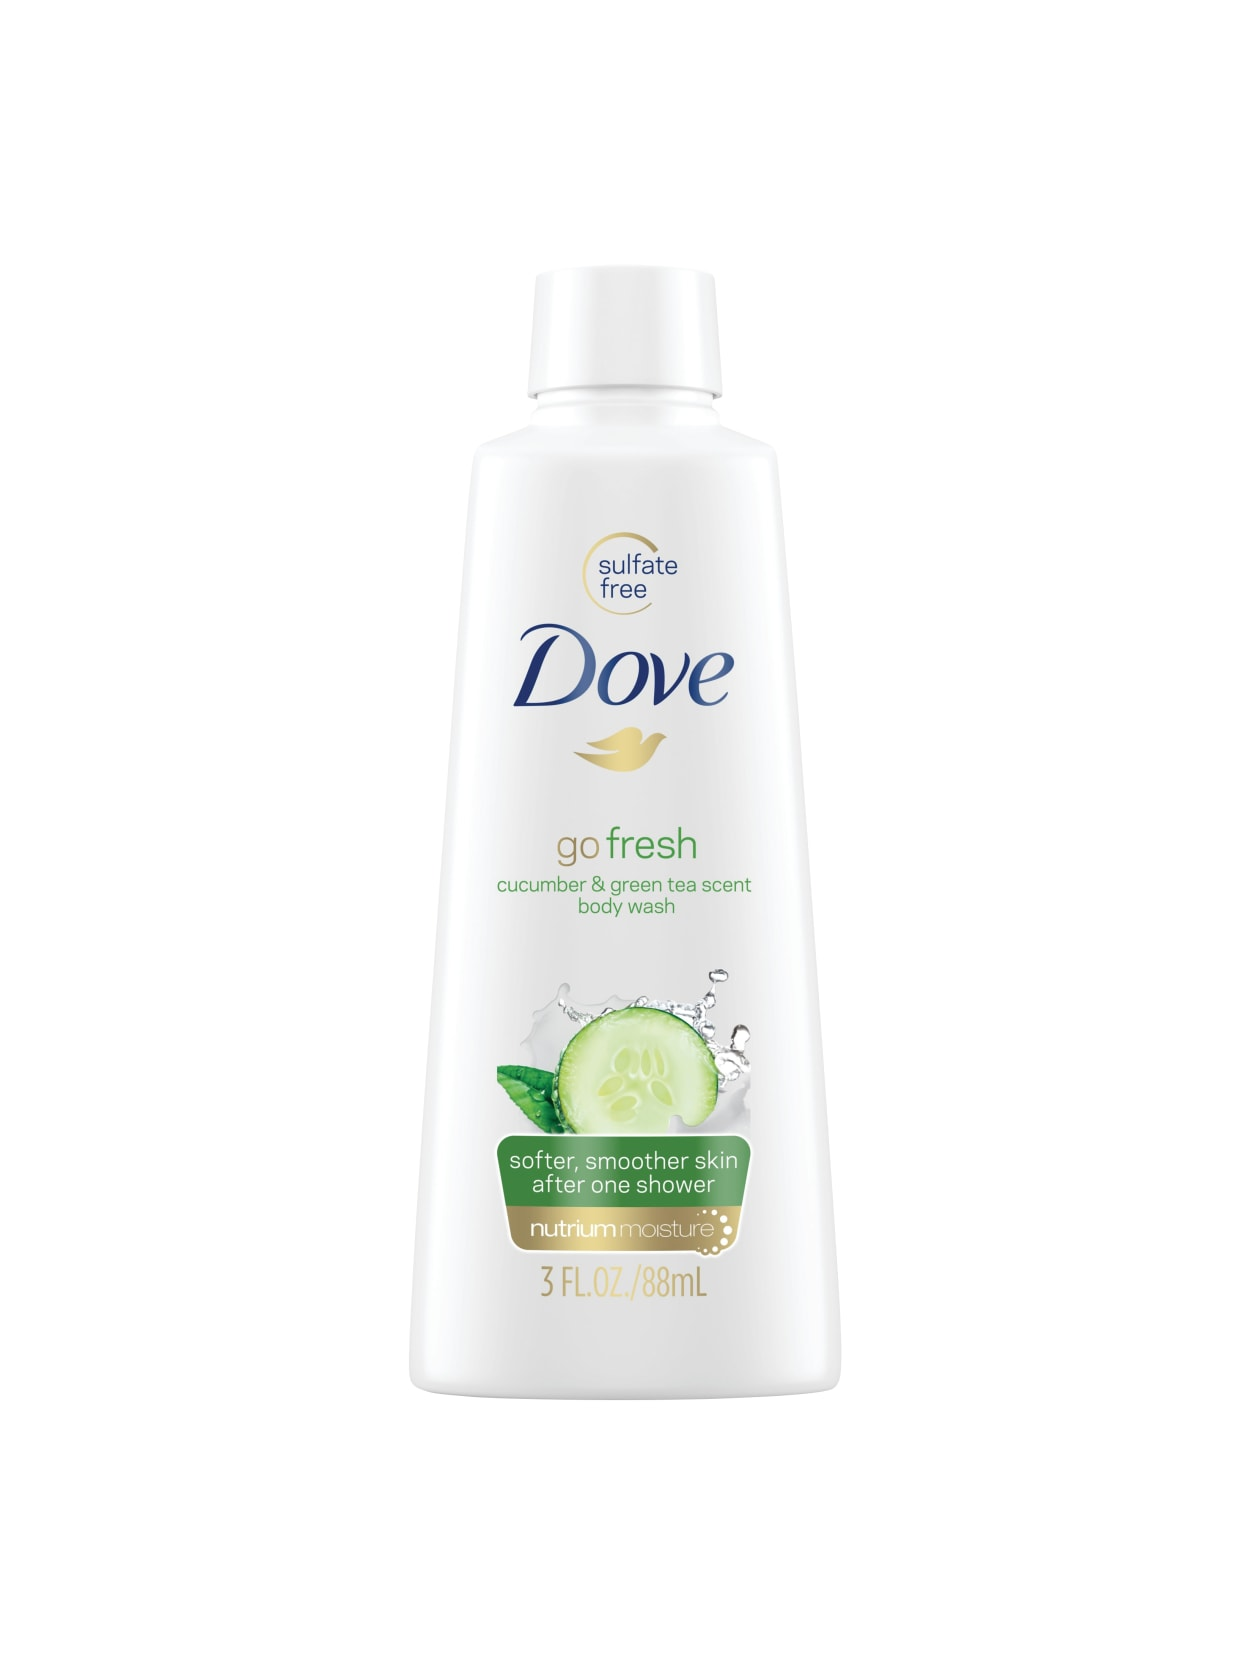 Dove Body Wash Cucumber Scent 3 Oz Office Depot